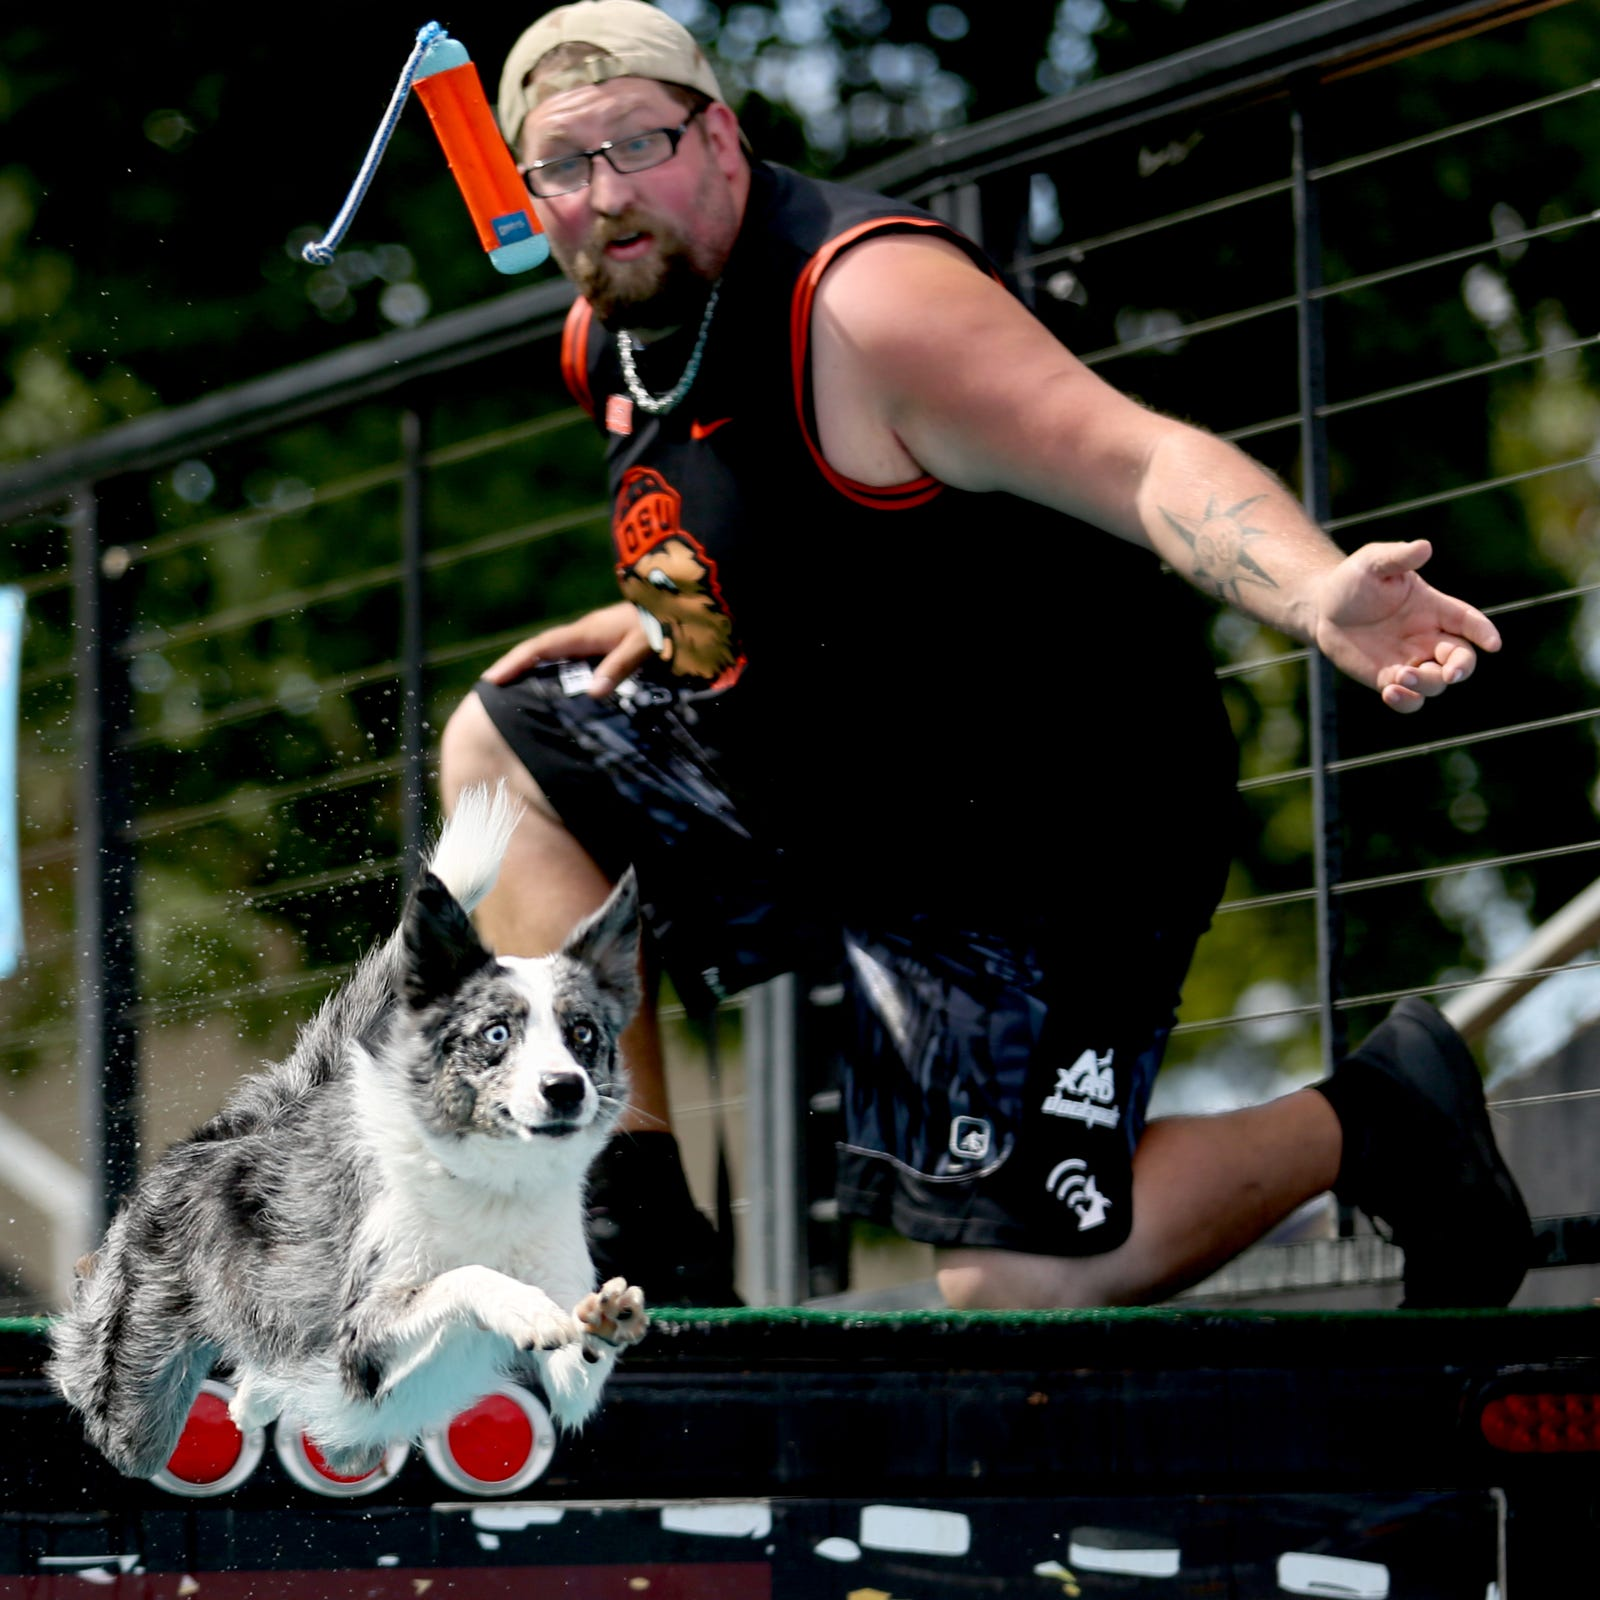 Dogs doin' big dives: X-Treme AirDog World Championships Sept. 1-3